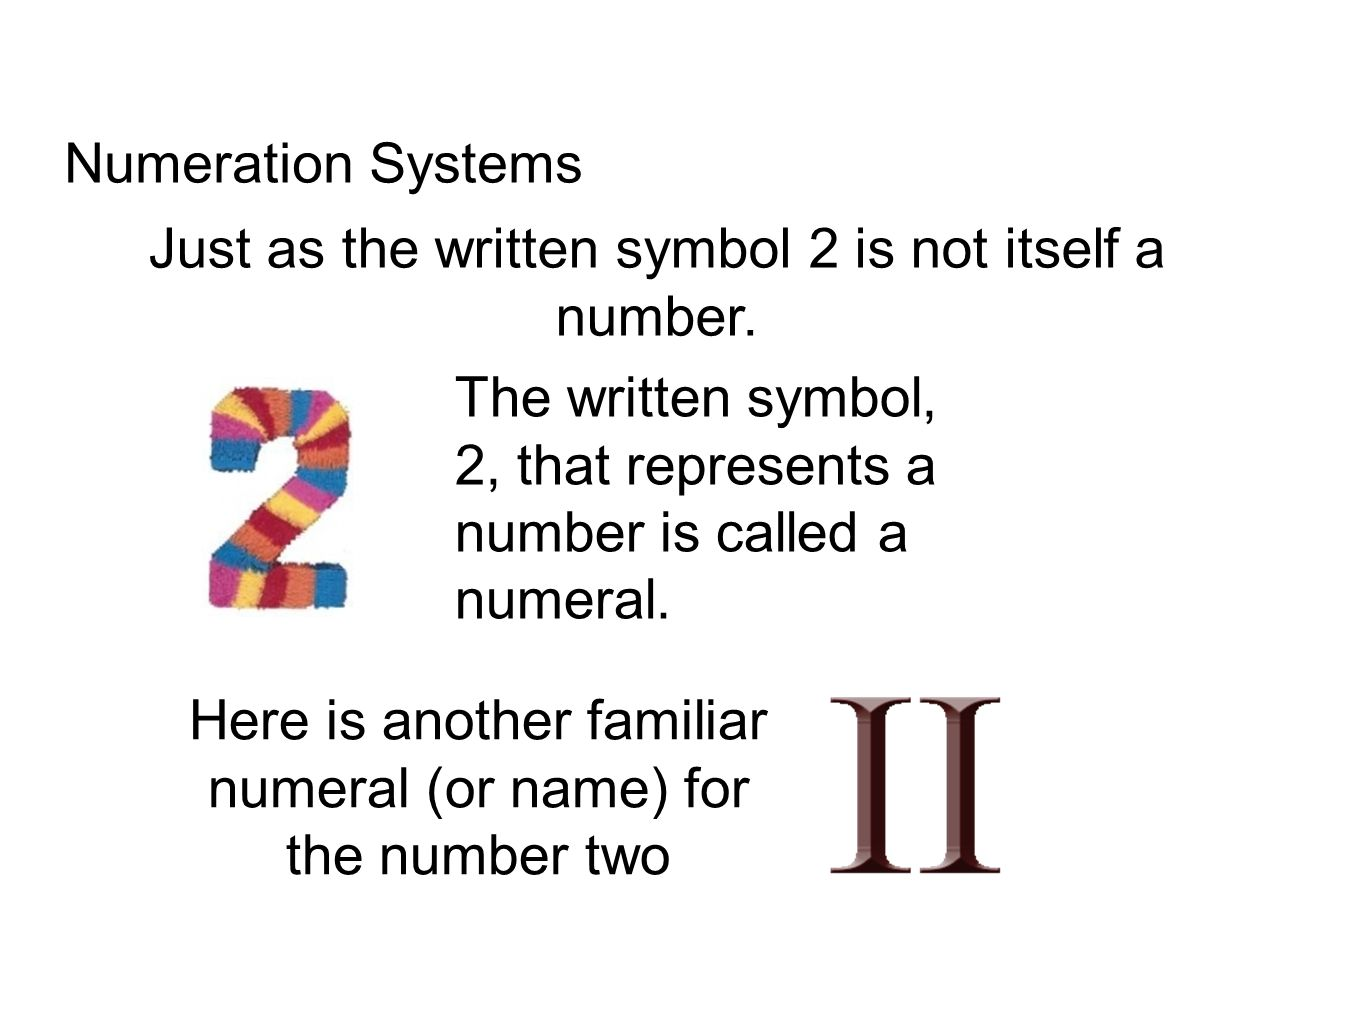 Finite math symbols ford galaxie wiring diagrams free section 21 sets and whole numbers ppt video online download just as the written symbol 2 is not itself a number 8113826 finite math symbols buycottarizona